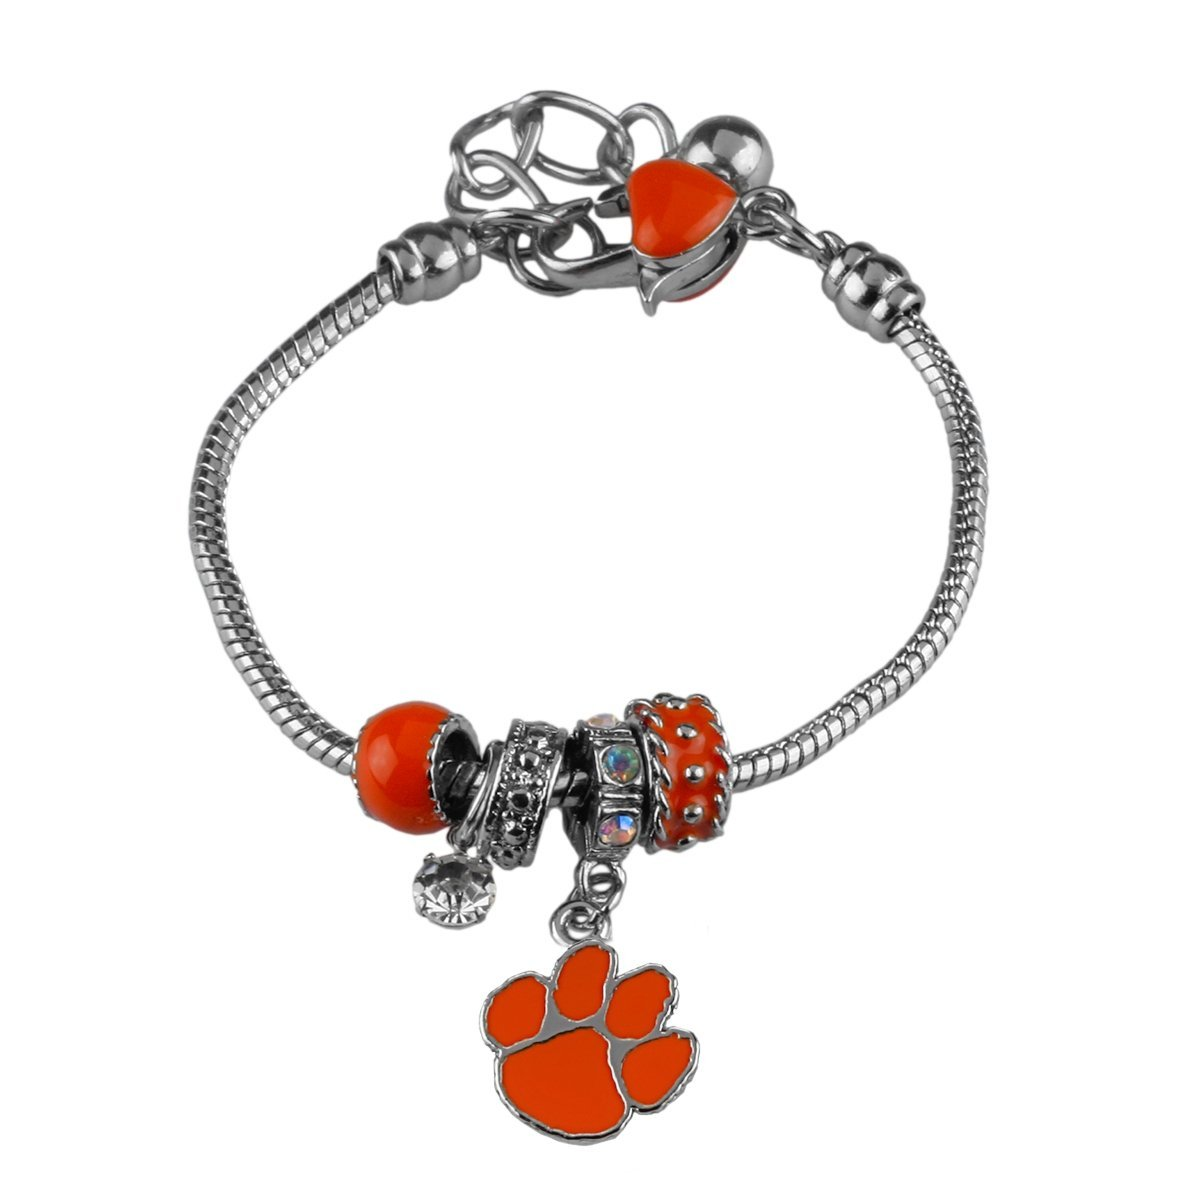 Clemson Beaded Charm Bracelet - Mr. Knickerbocker